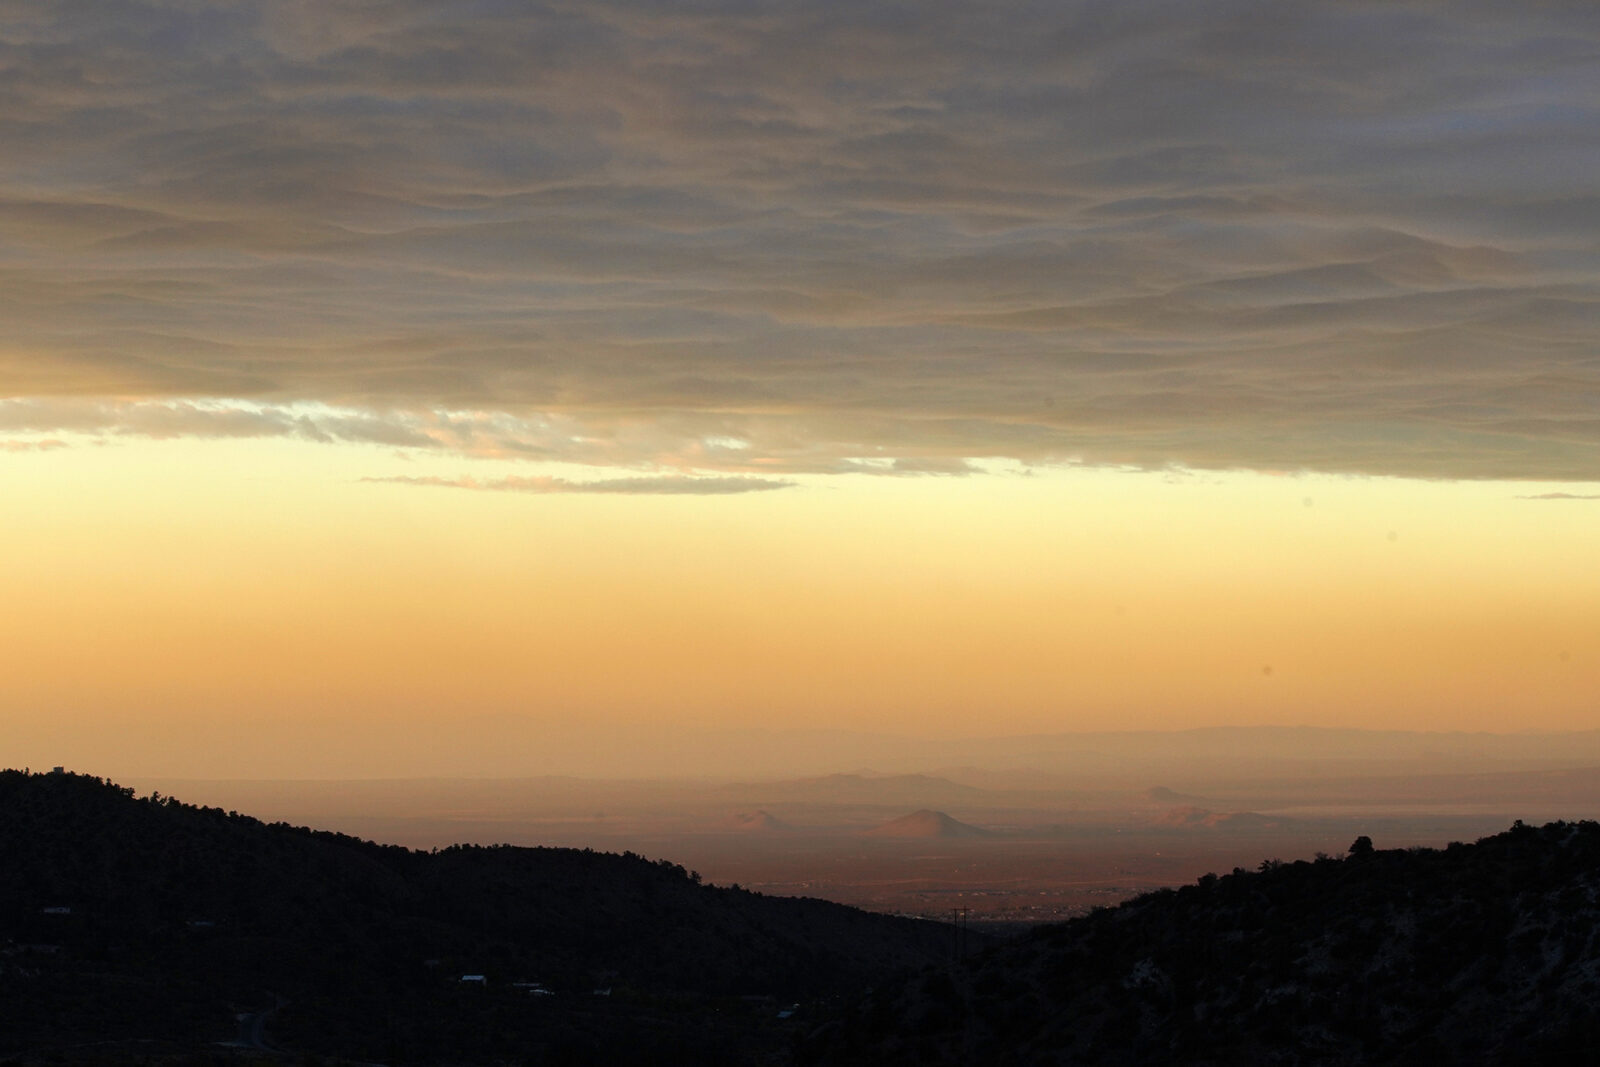 An inversion layer sweeps across the Greater Los Angeles region. It was here in the 1950s, according to a long-circulated rumor, that underwear garment manufacturers allegedly discovered the harm air pollution can cause to elastic.